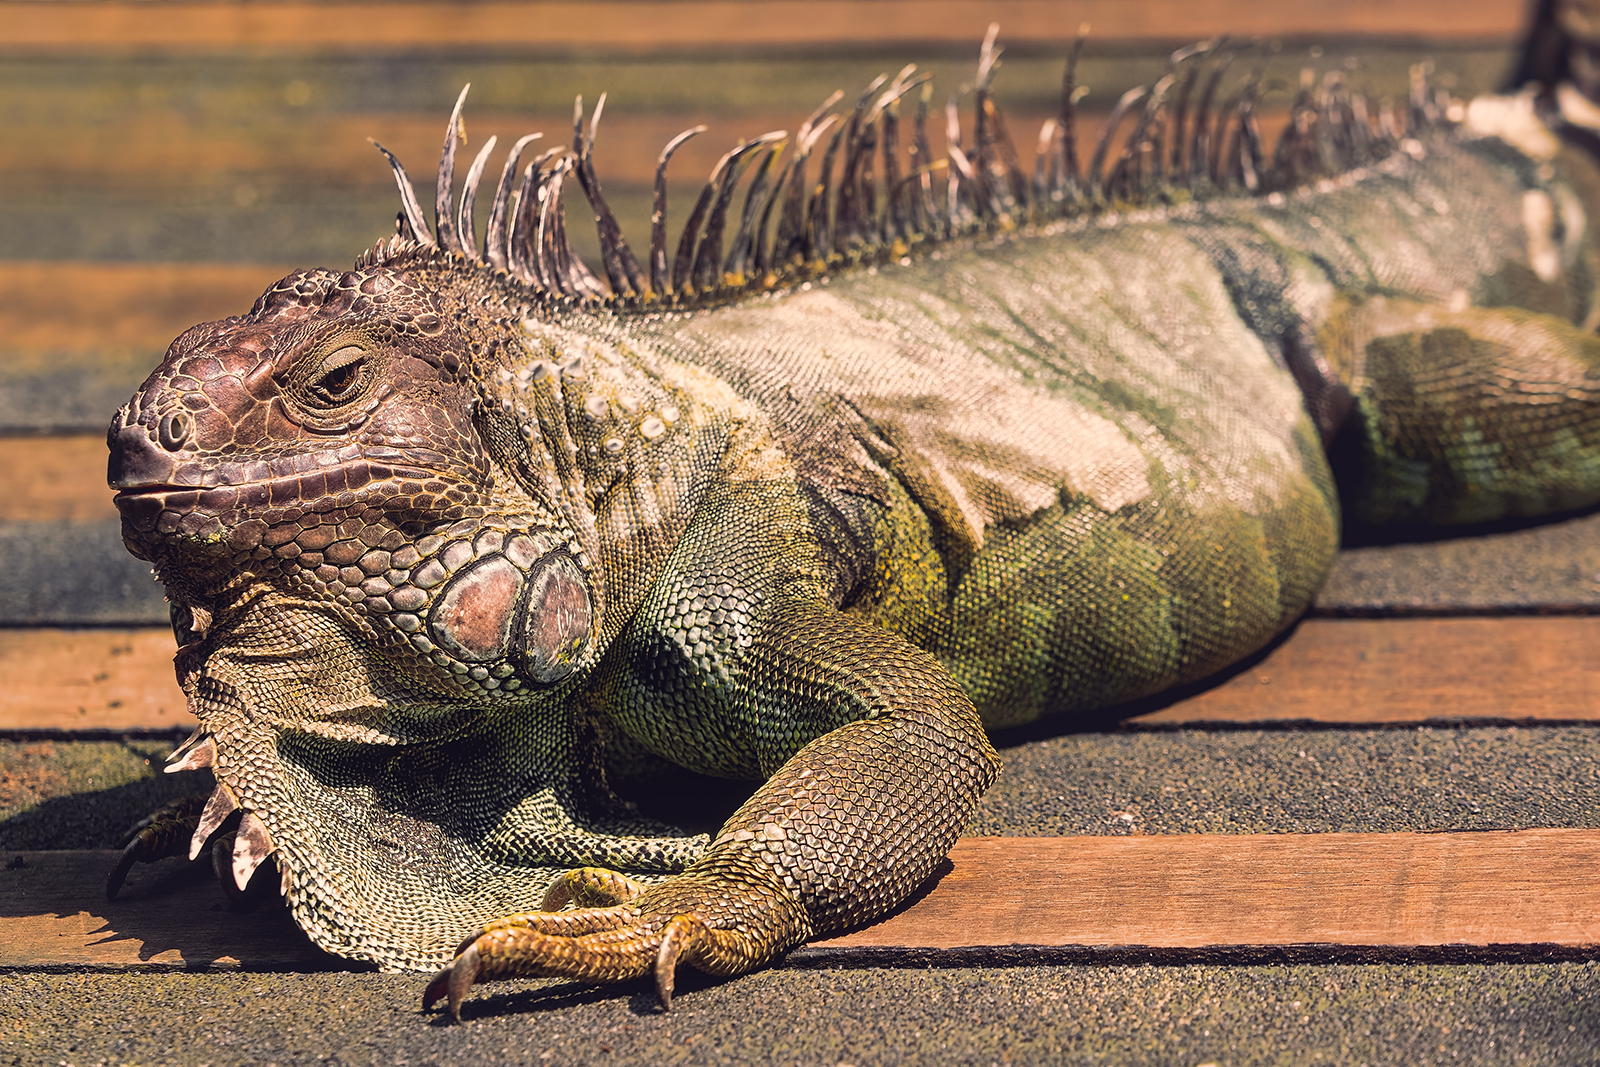 Closeup of a Green Iguana